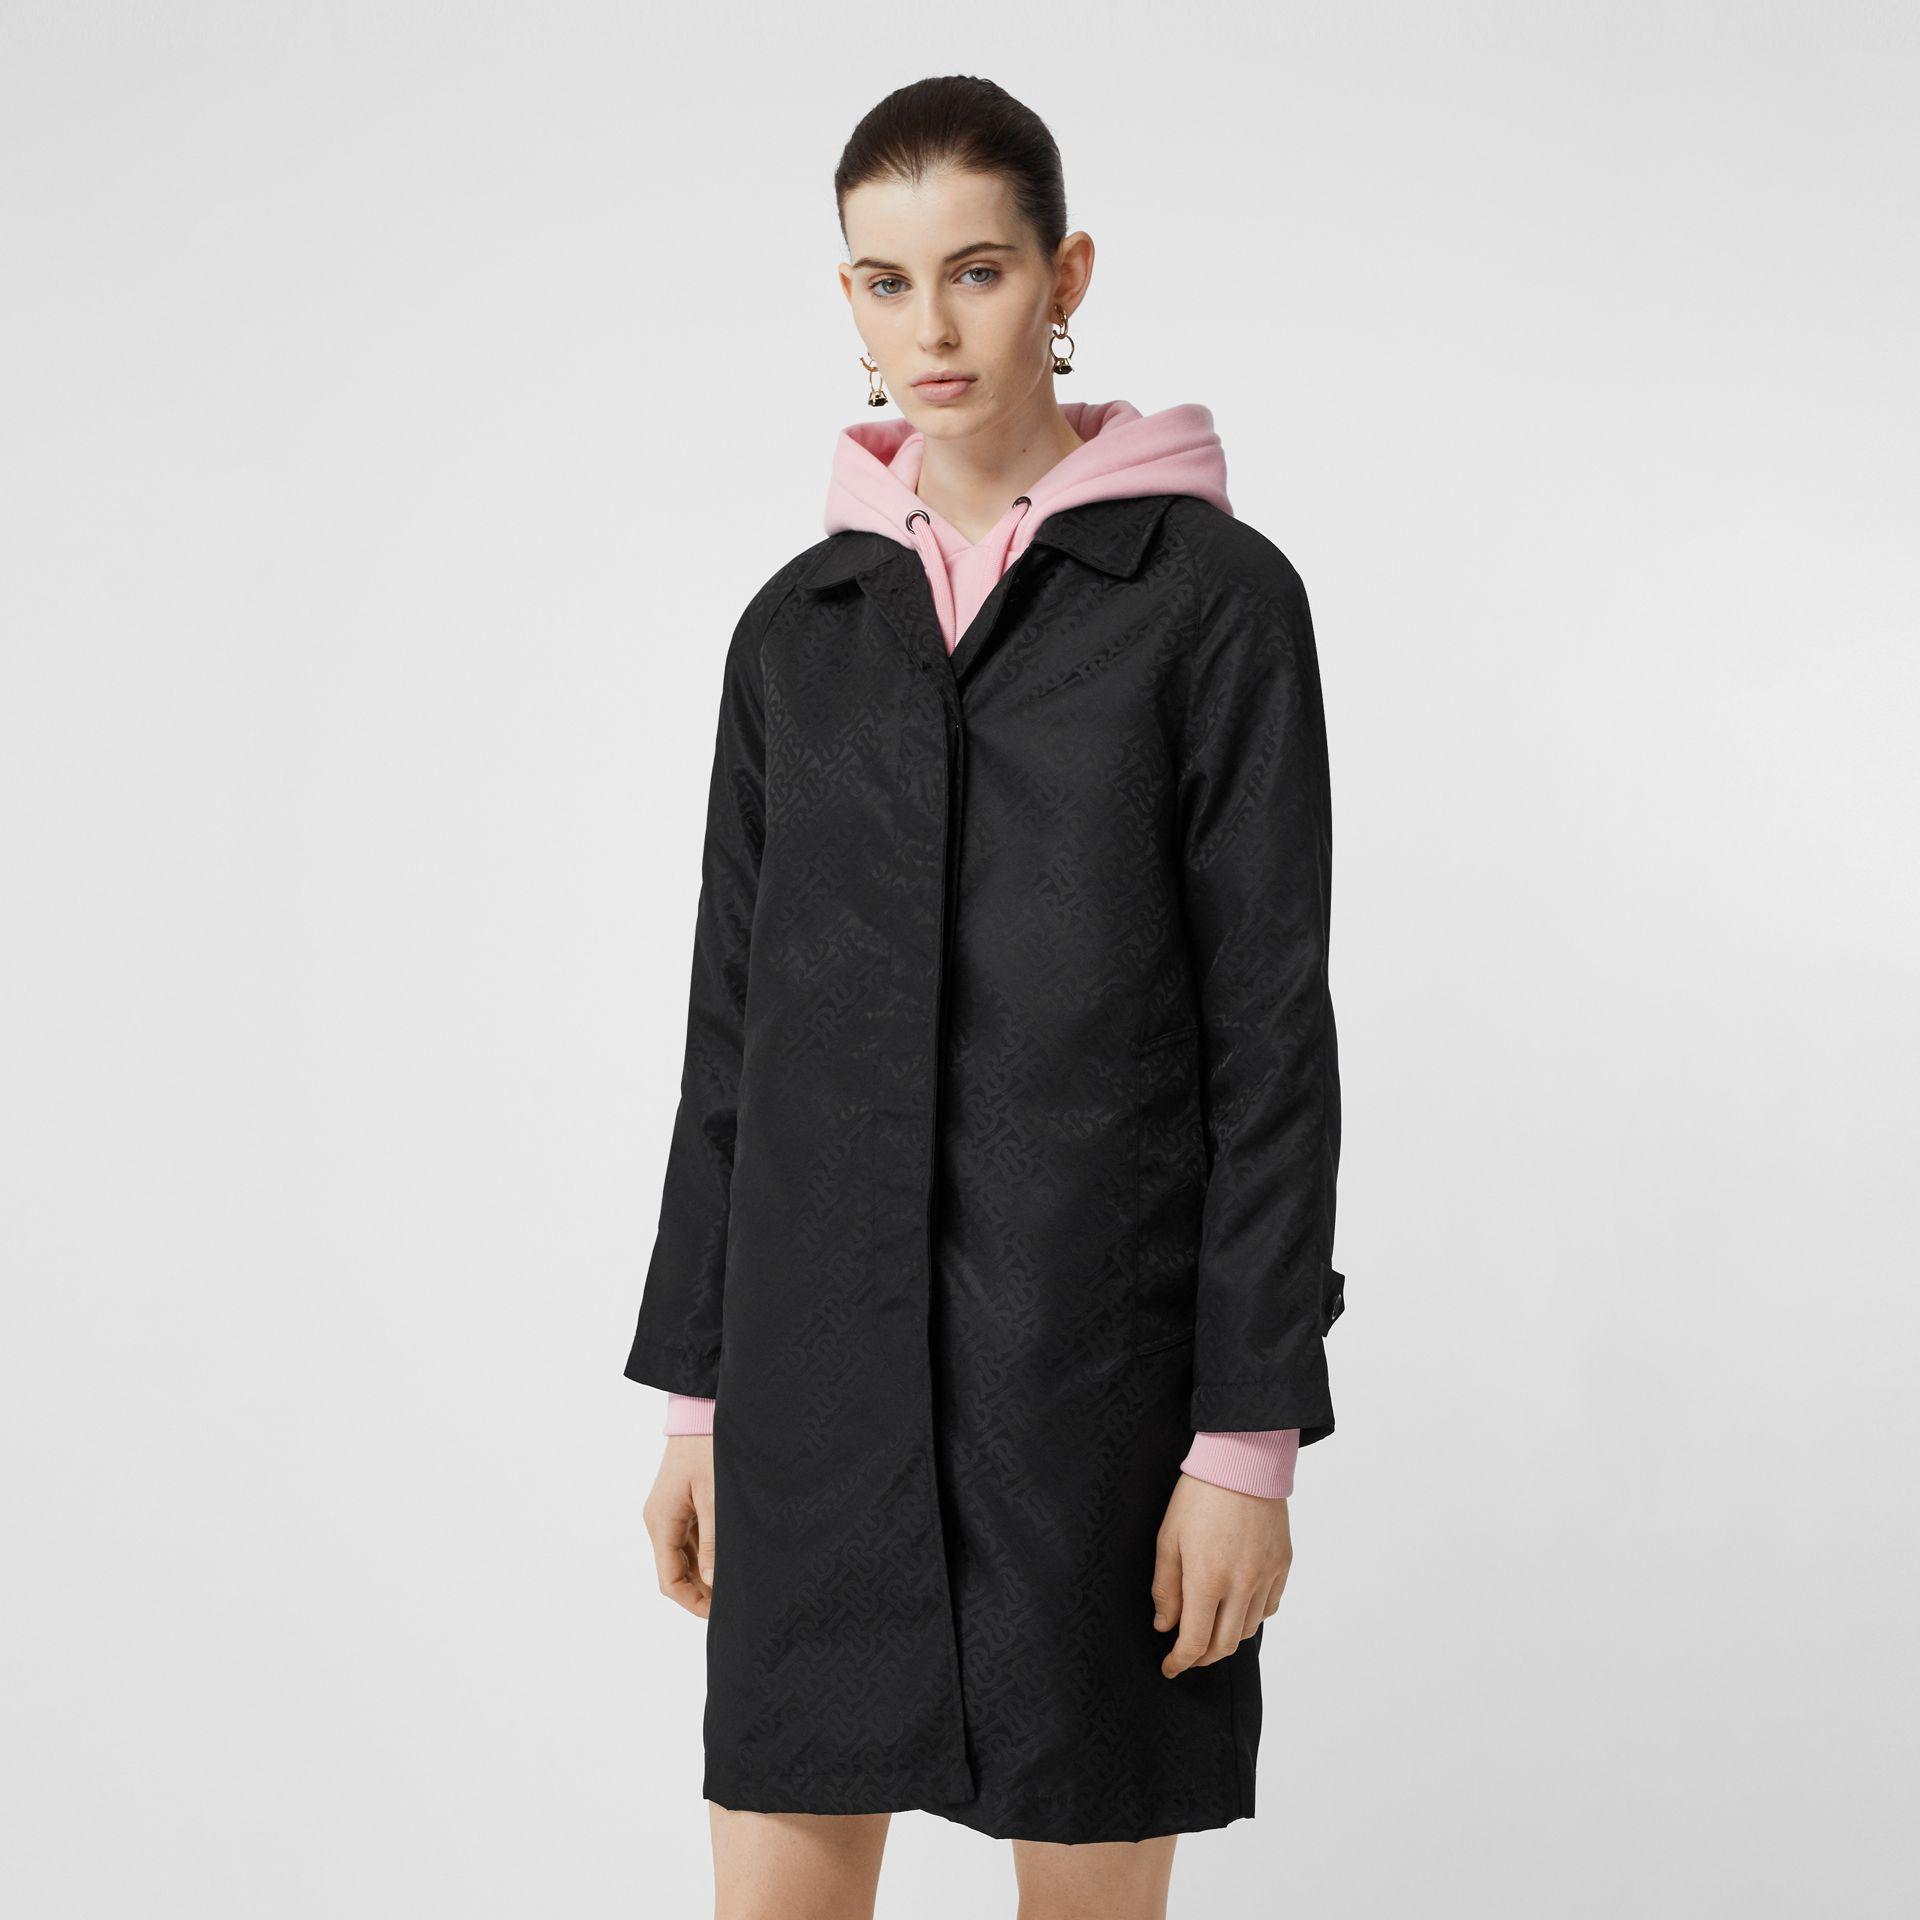 Monogram ECONYL® Jacquard Car Coat in Black - Women | Burberry Australia - gallery image 6